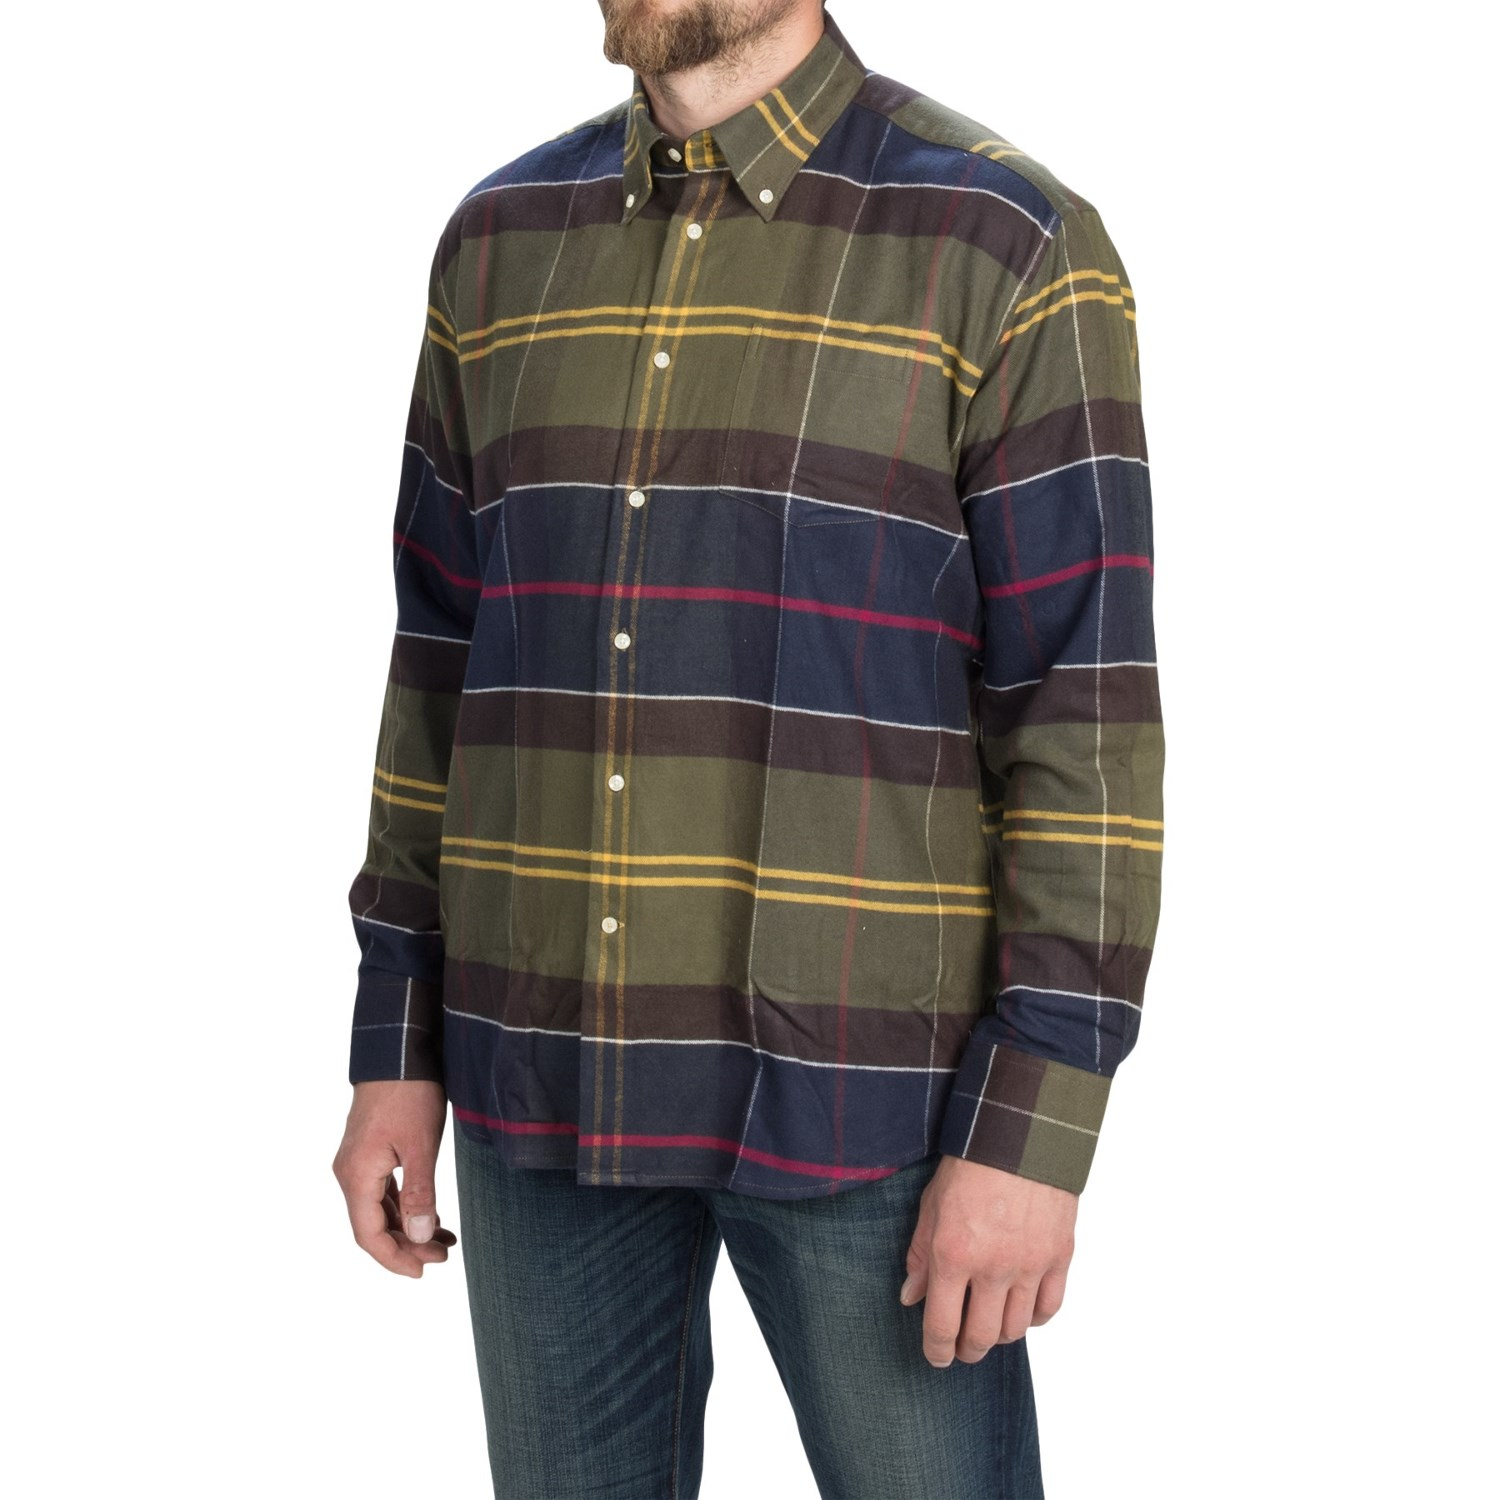 Comfy and durable,this classic flannel shirt is a Great addition to Any Genhoo Women's Roll up Long Sleeve Plaid Collared Button Down Boyfriend Casual Flannel Shirt Top by Genhoo.